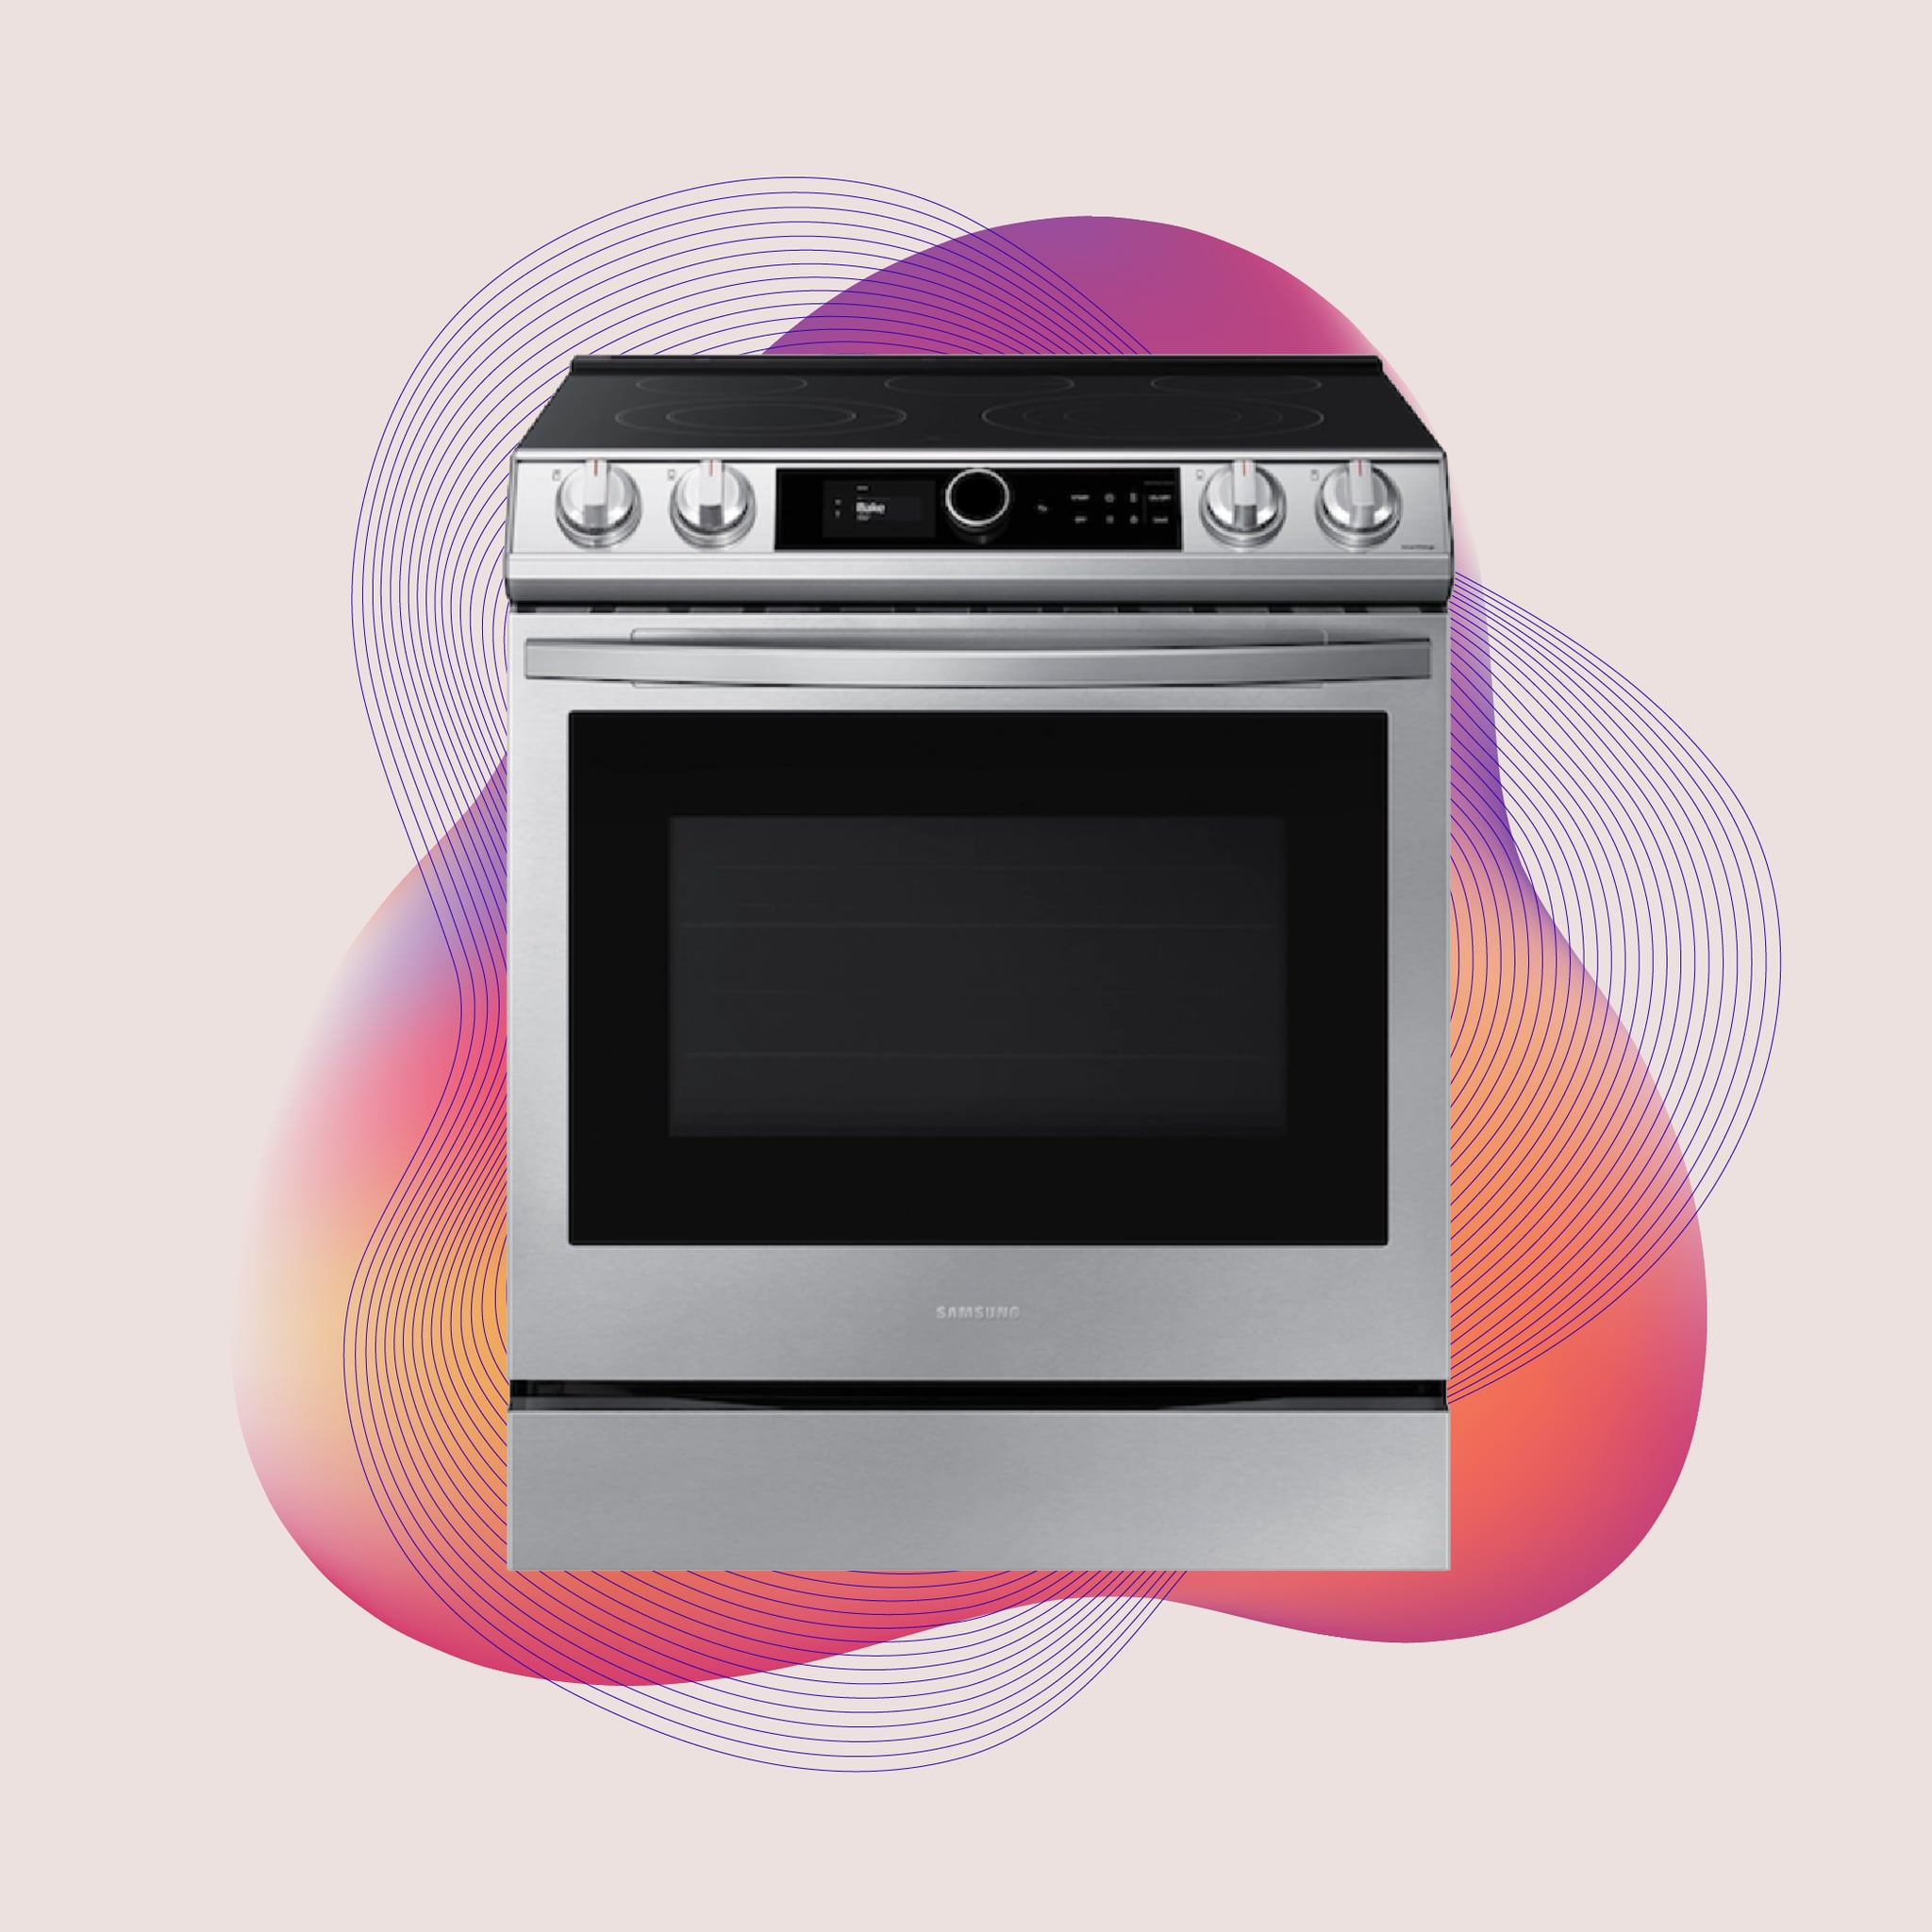 Slide-in Electric Range with Smart Dial, Air Fry, and Wi-Fi